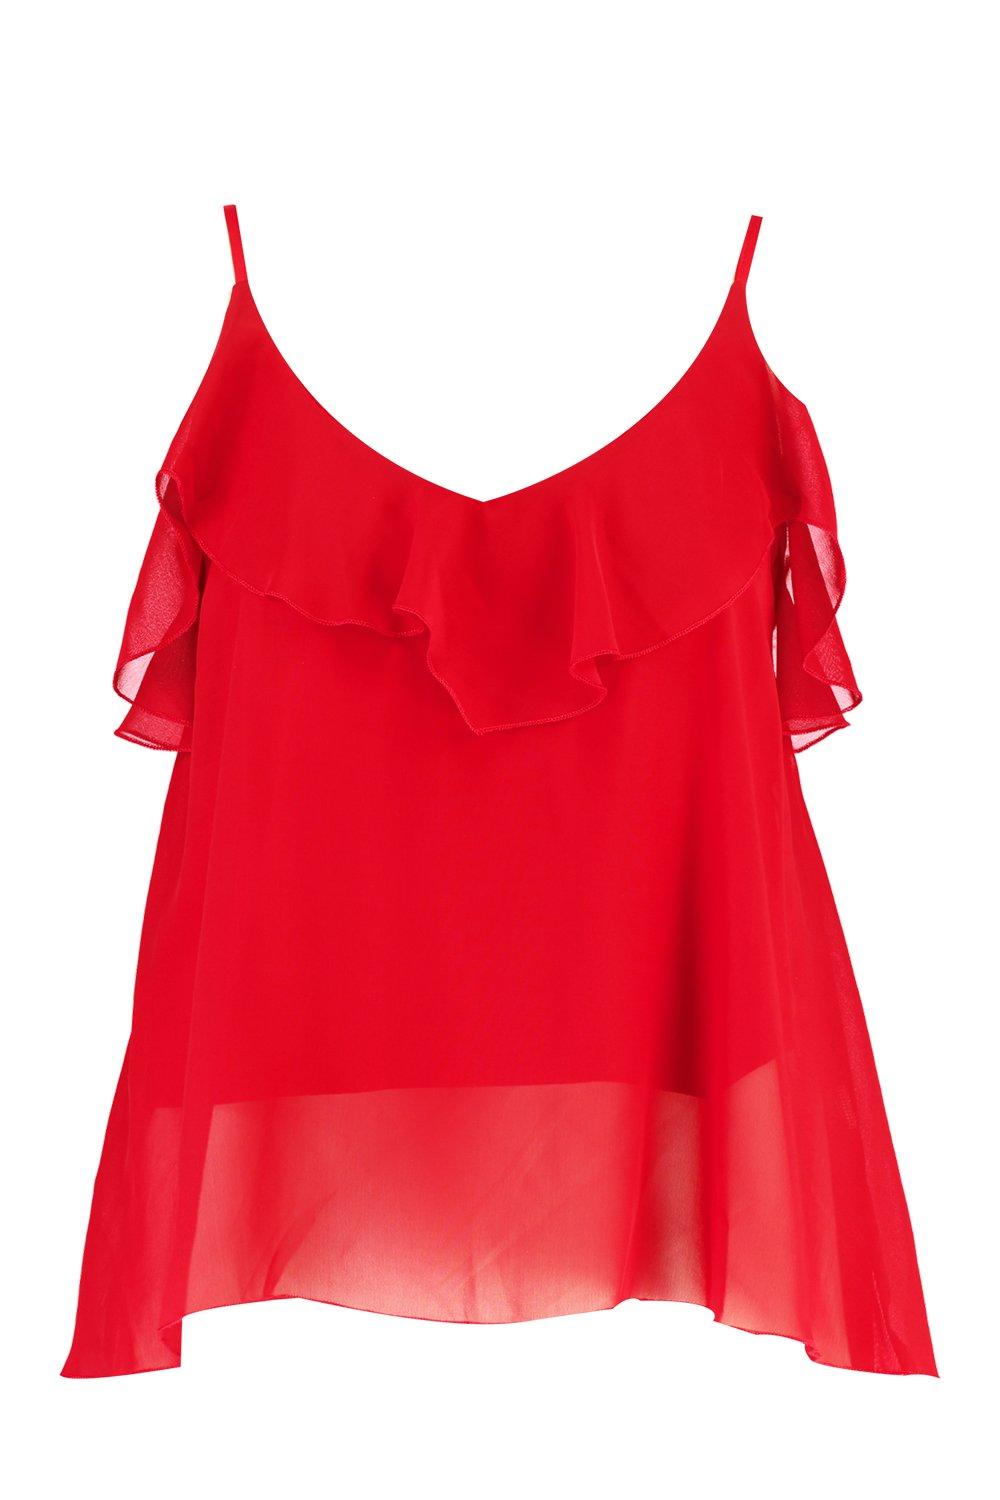 Ruffle Plus Swing Detail red Cami 4ZCwZATq